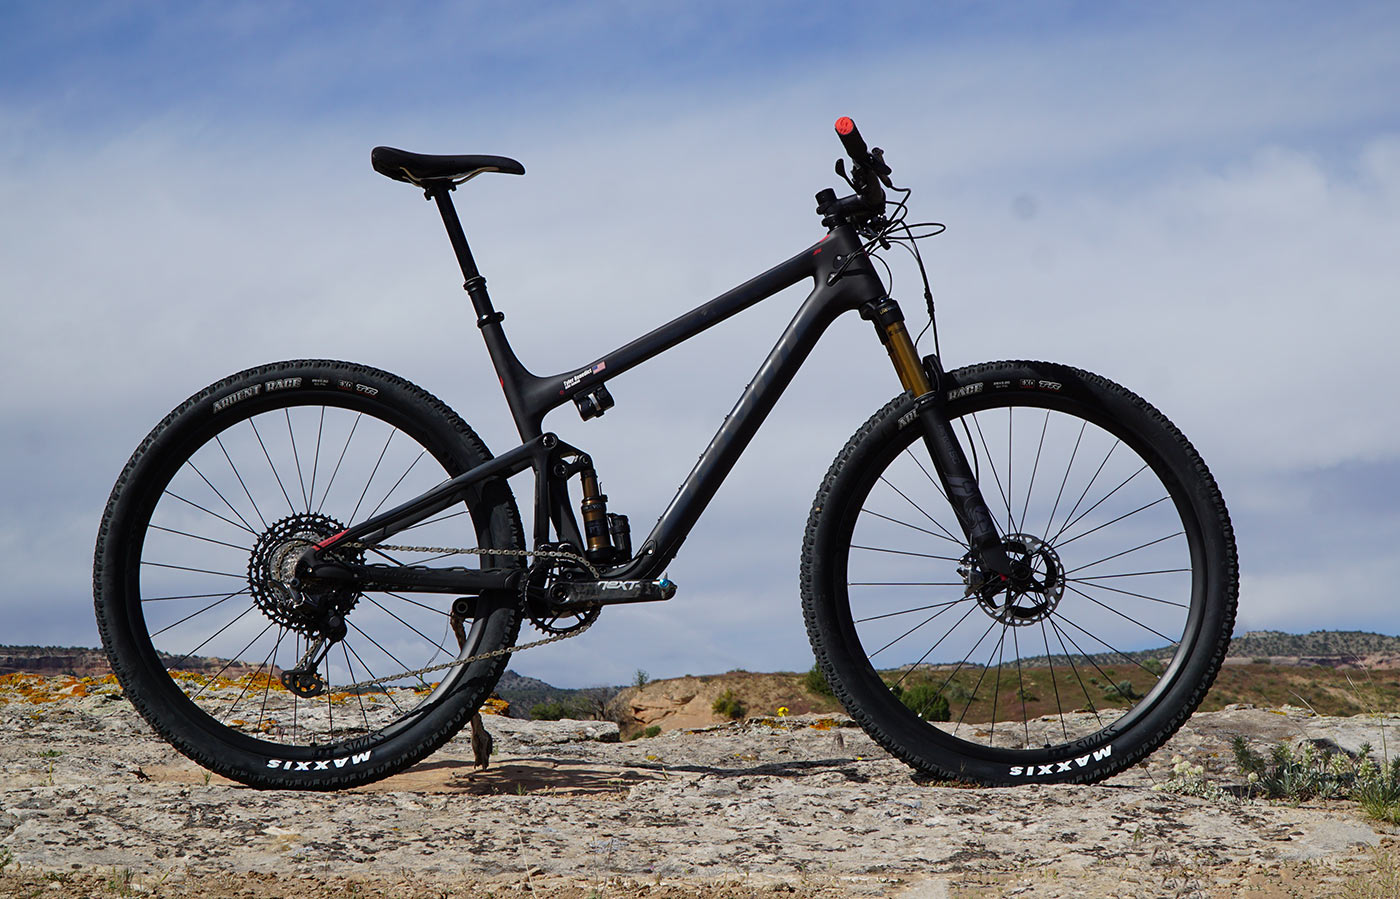 d48bfbeb4c4 new pivot mach 4 sl 29er xc race full suspension mountain bike tech details  and features